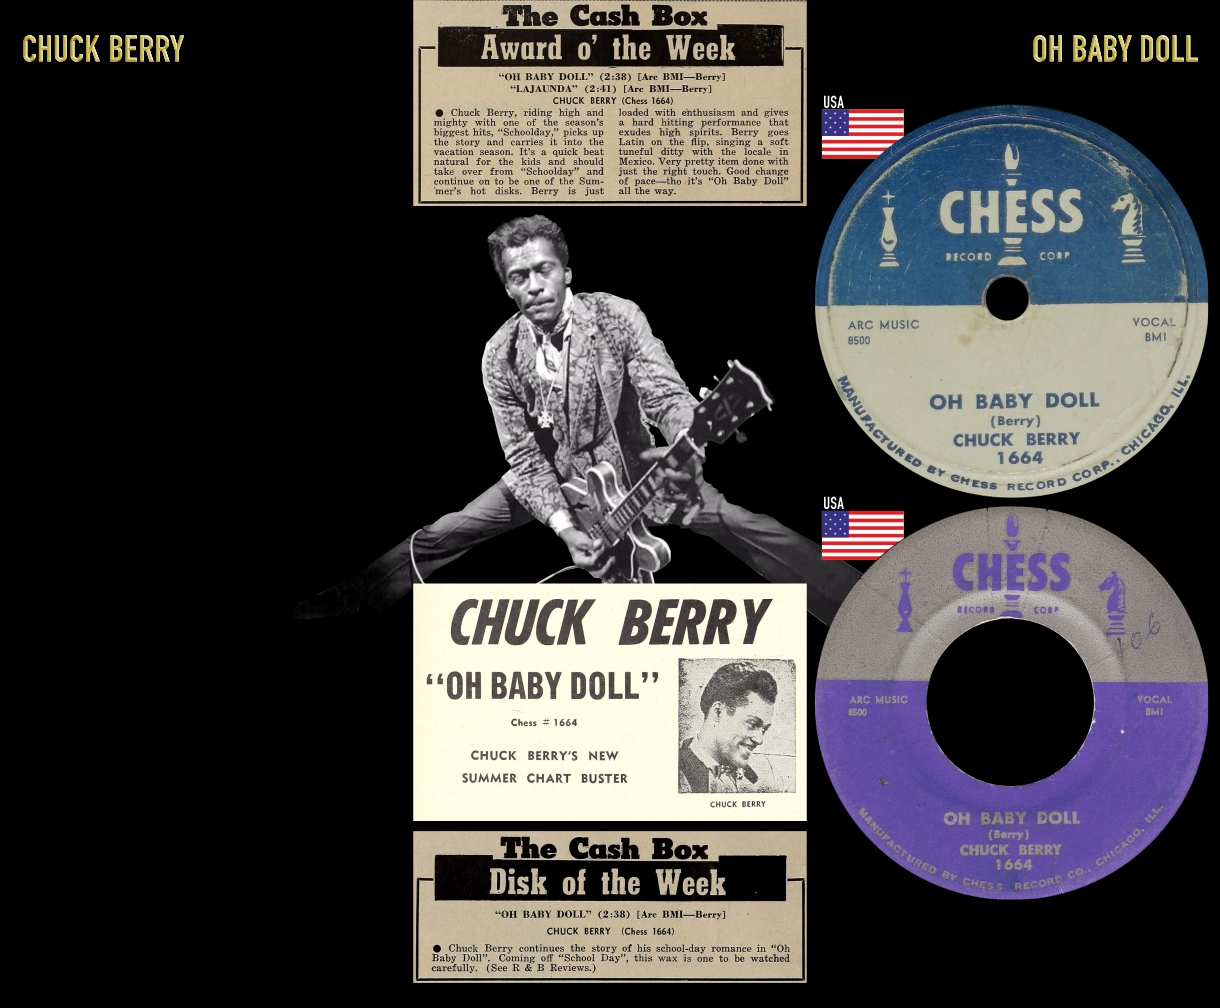 570727_Chuck Berry_Oh Baby Doll